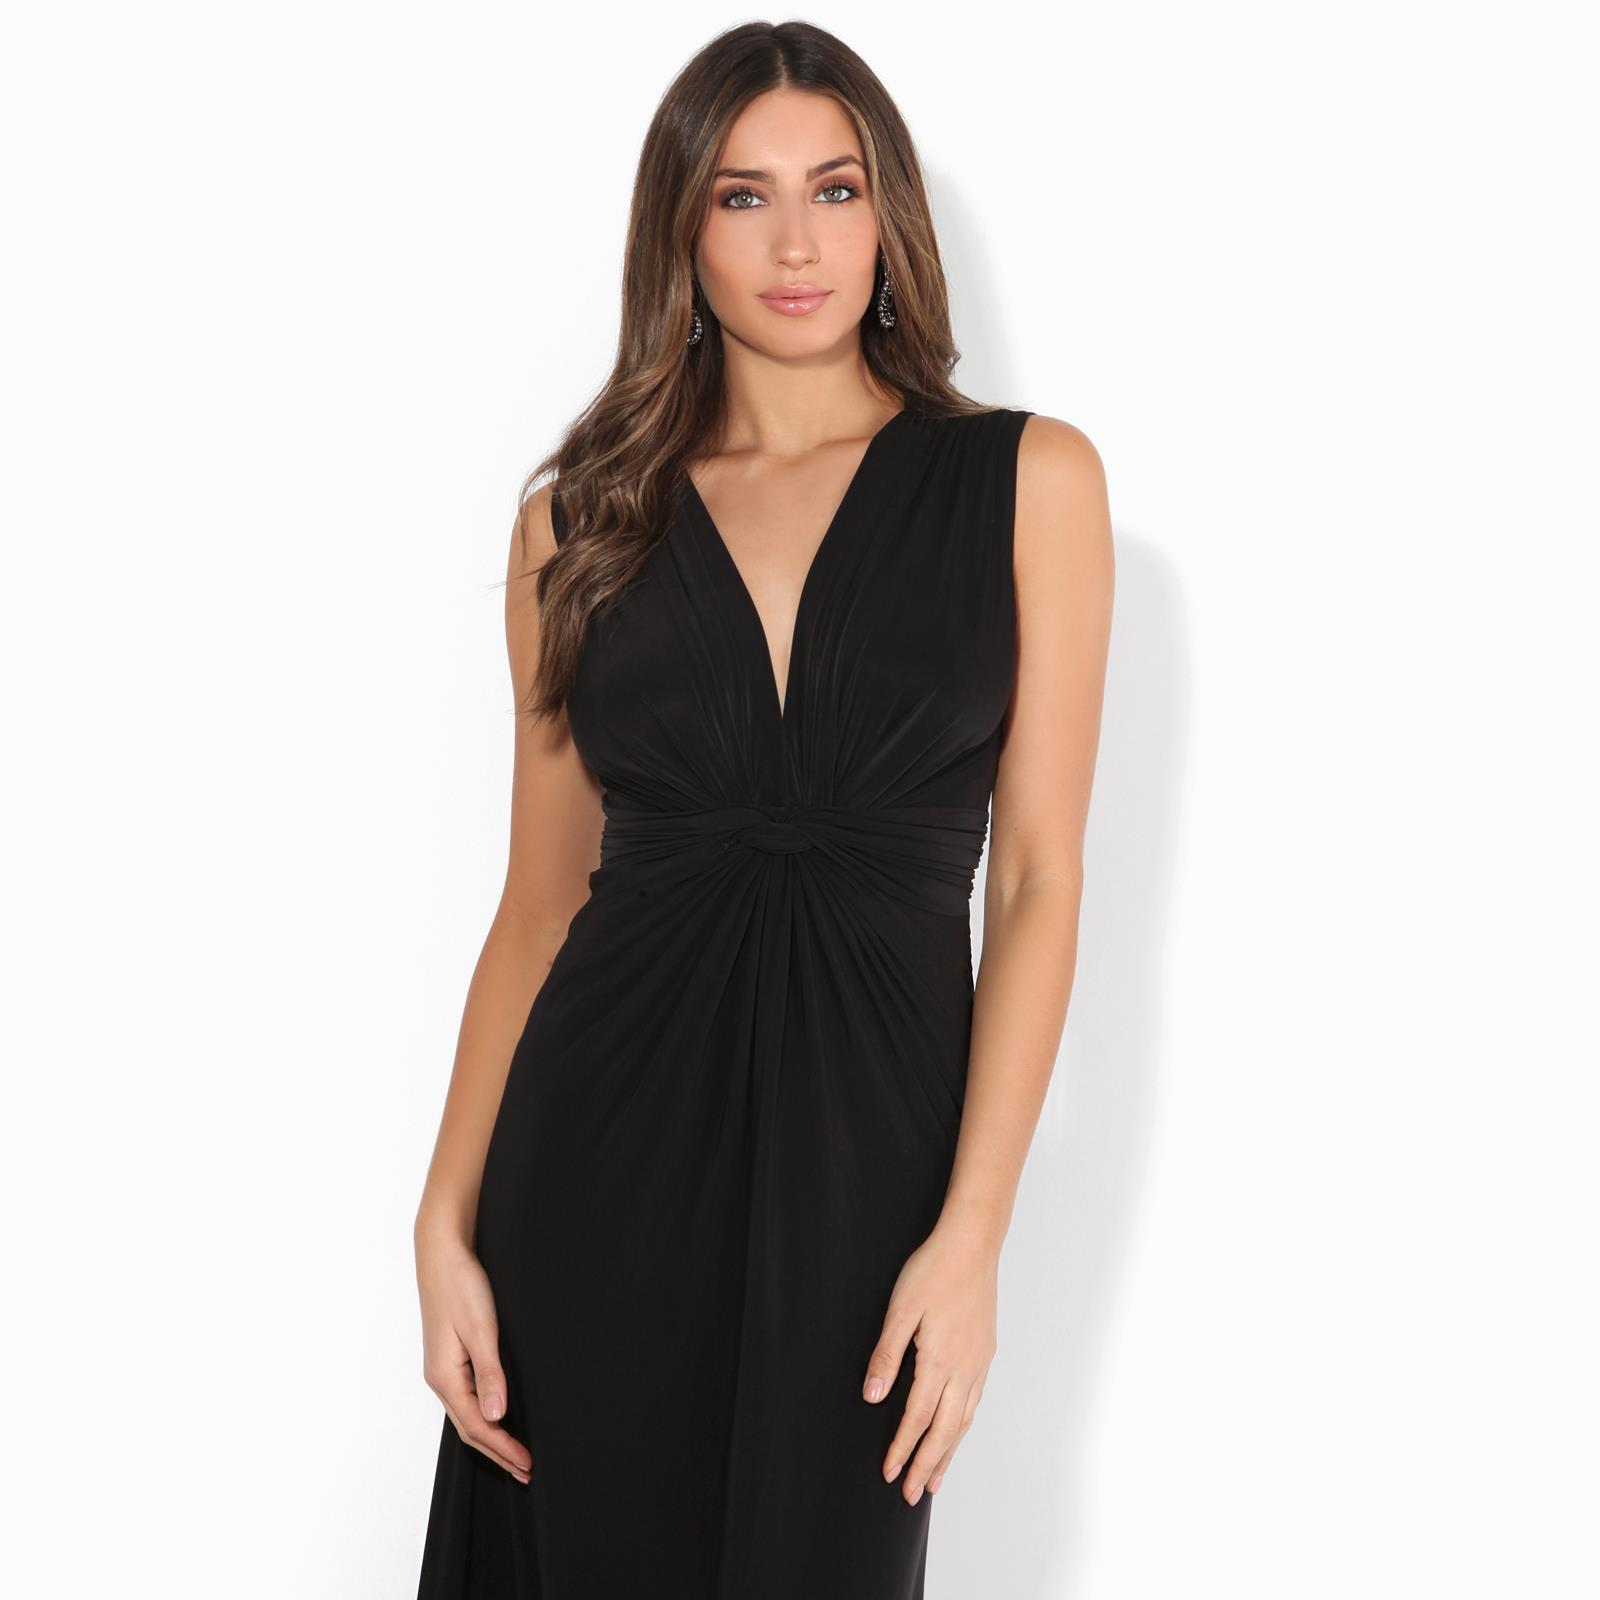 Robe Femme Longue Habillee Mariage Chic Pas Cher Mode Cocktail Decollete Fronce Ebay